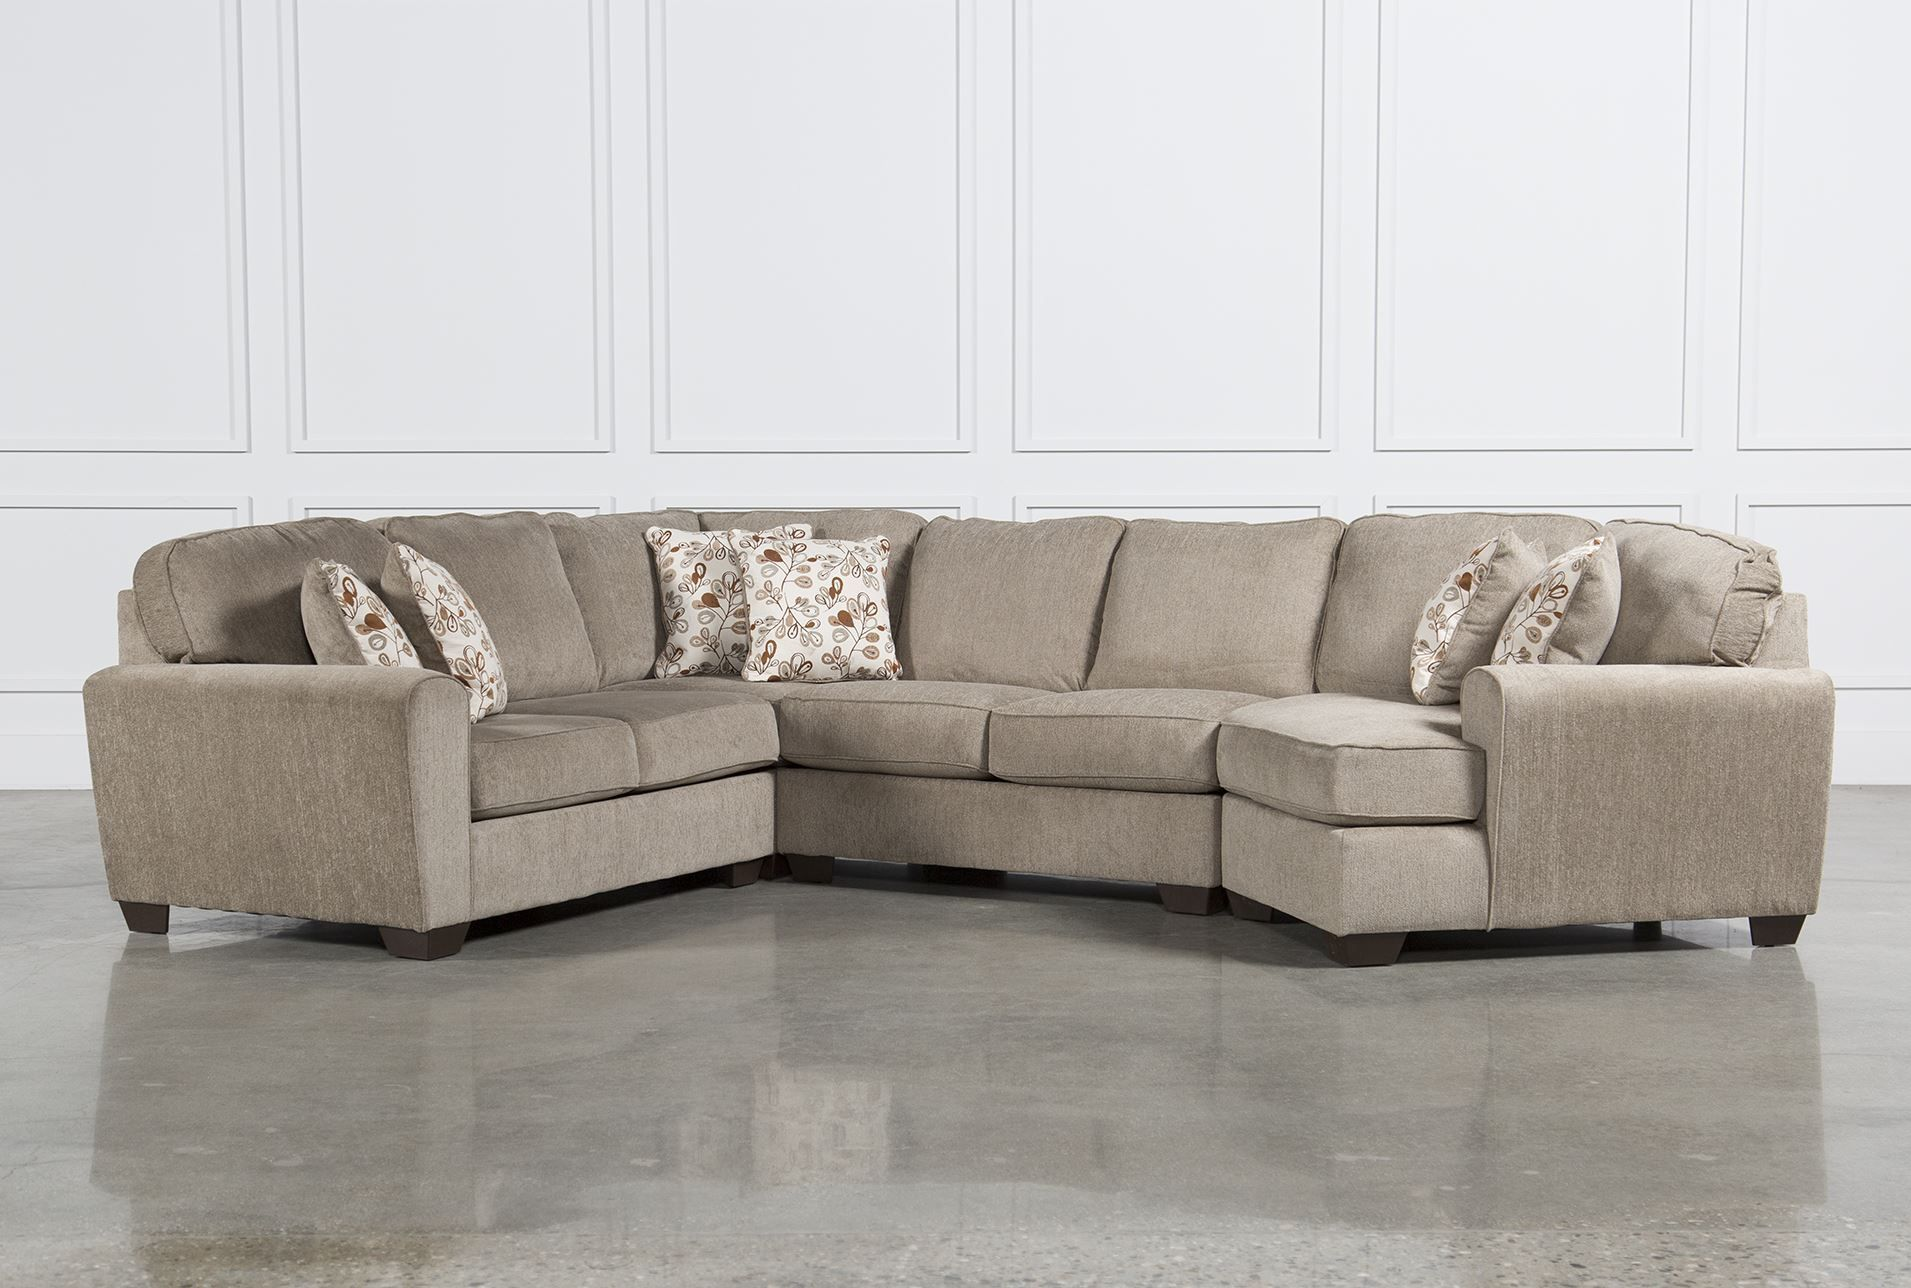 Best Patola Park 4 Piece Sectional W Raf Cuddler Signature 400 x 300